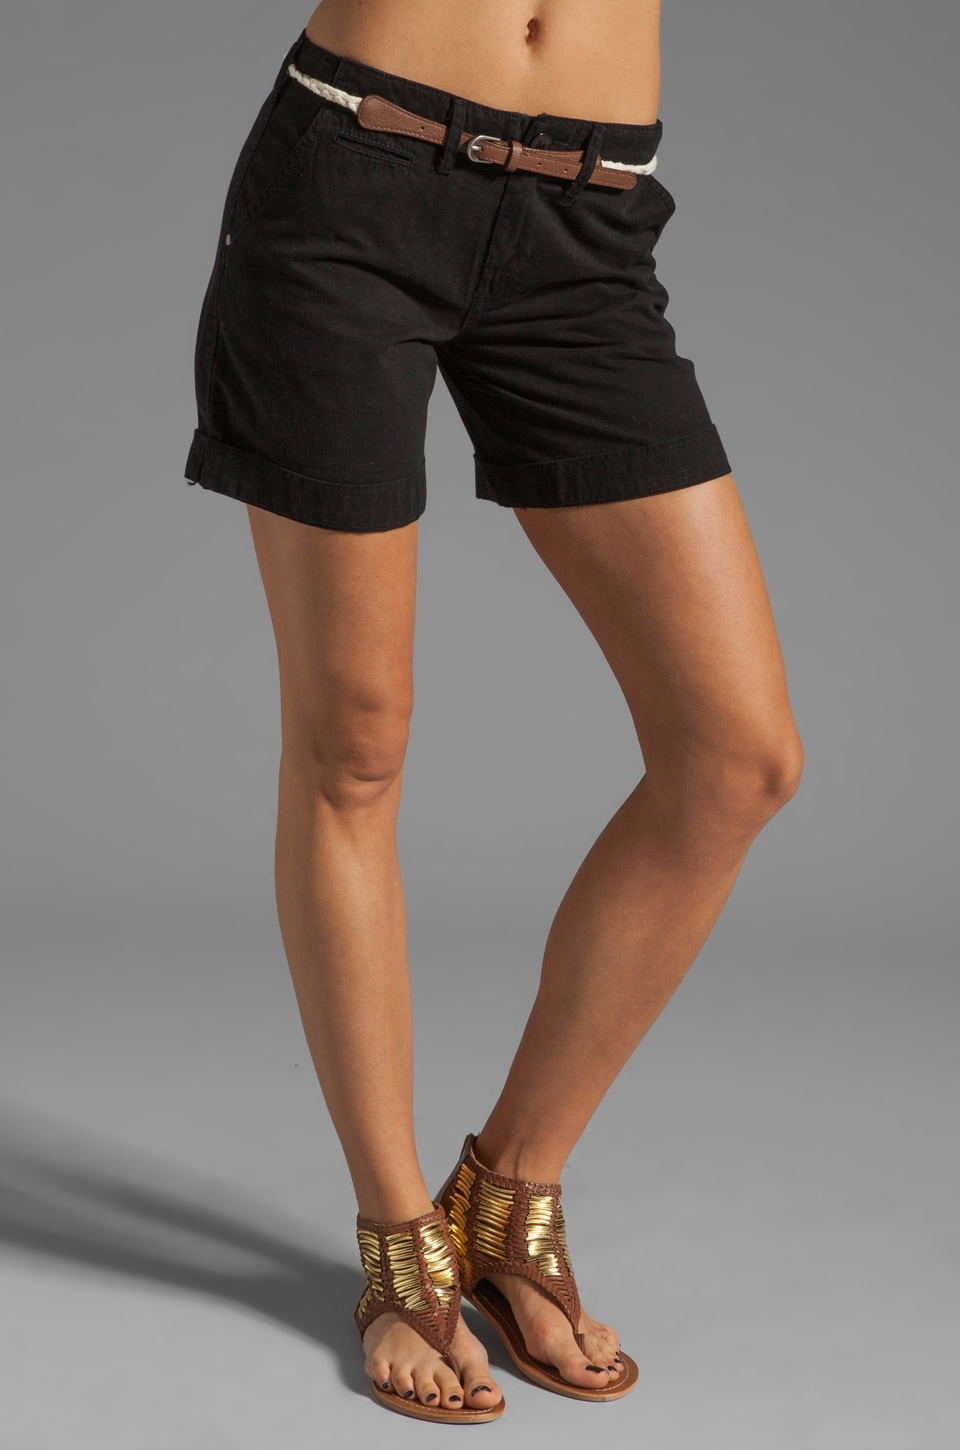 Sanctuary Liberty Roll Short with Belt in Black